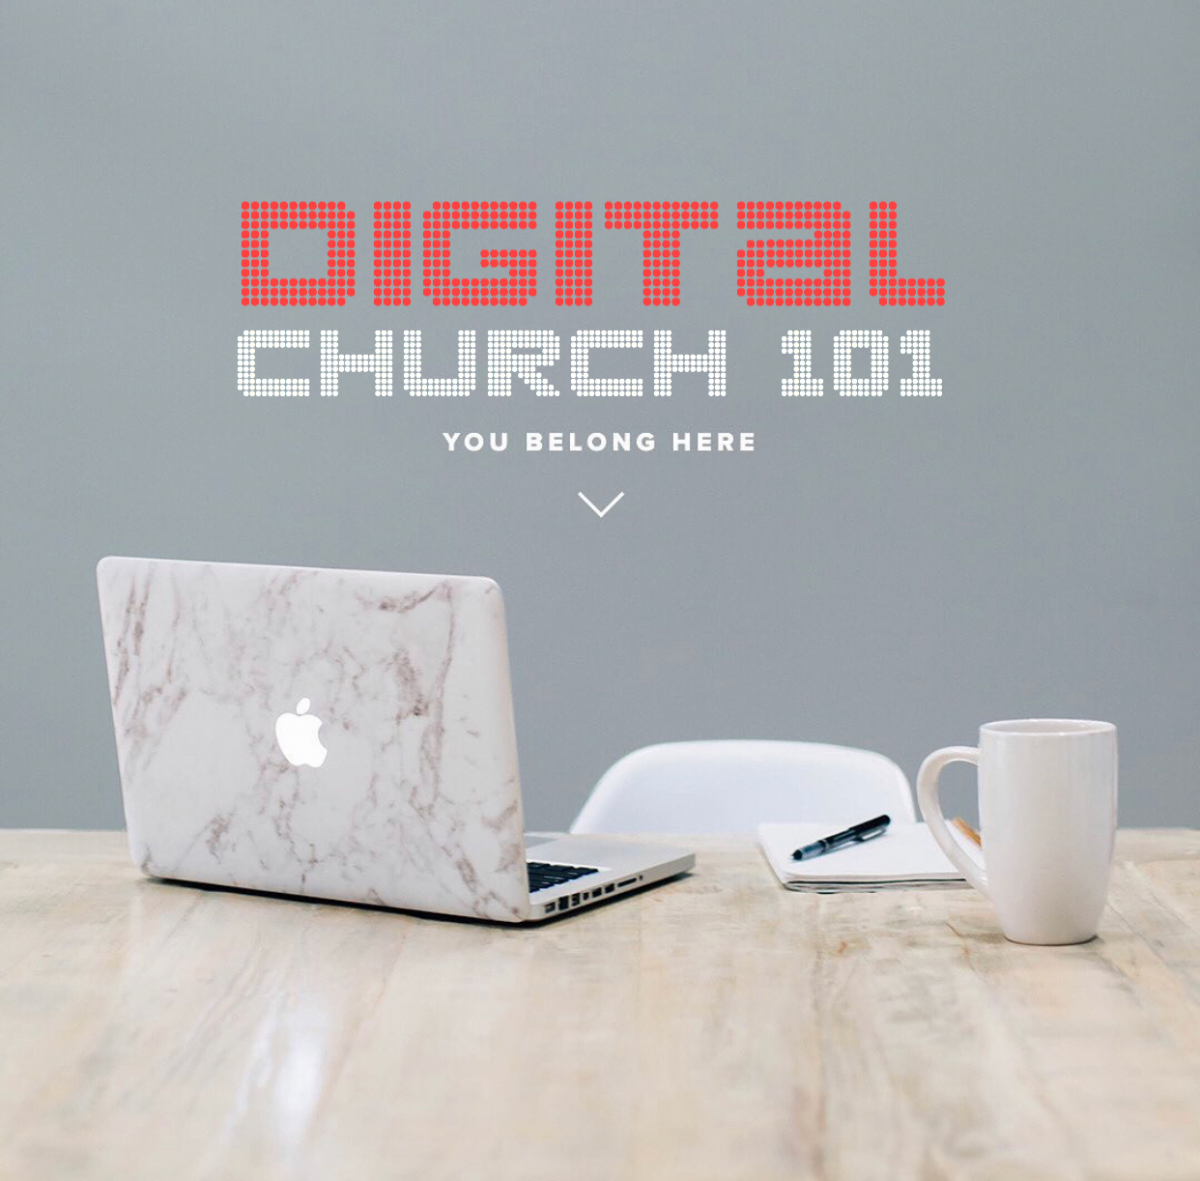 How to do Digital Church in light of COVID!